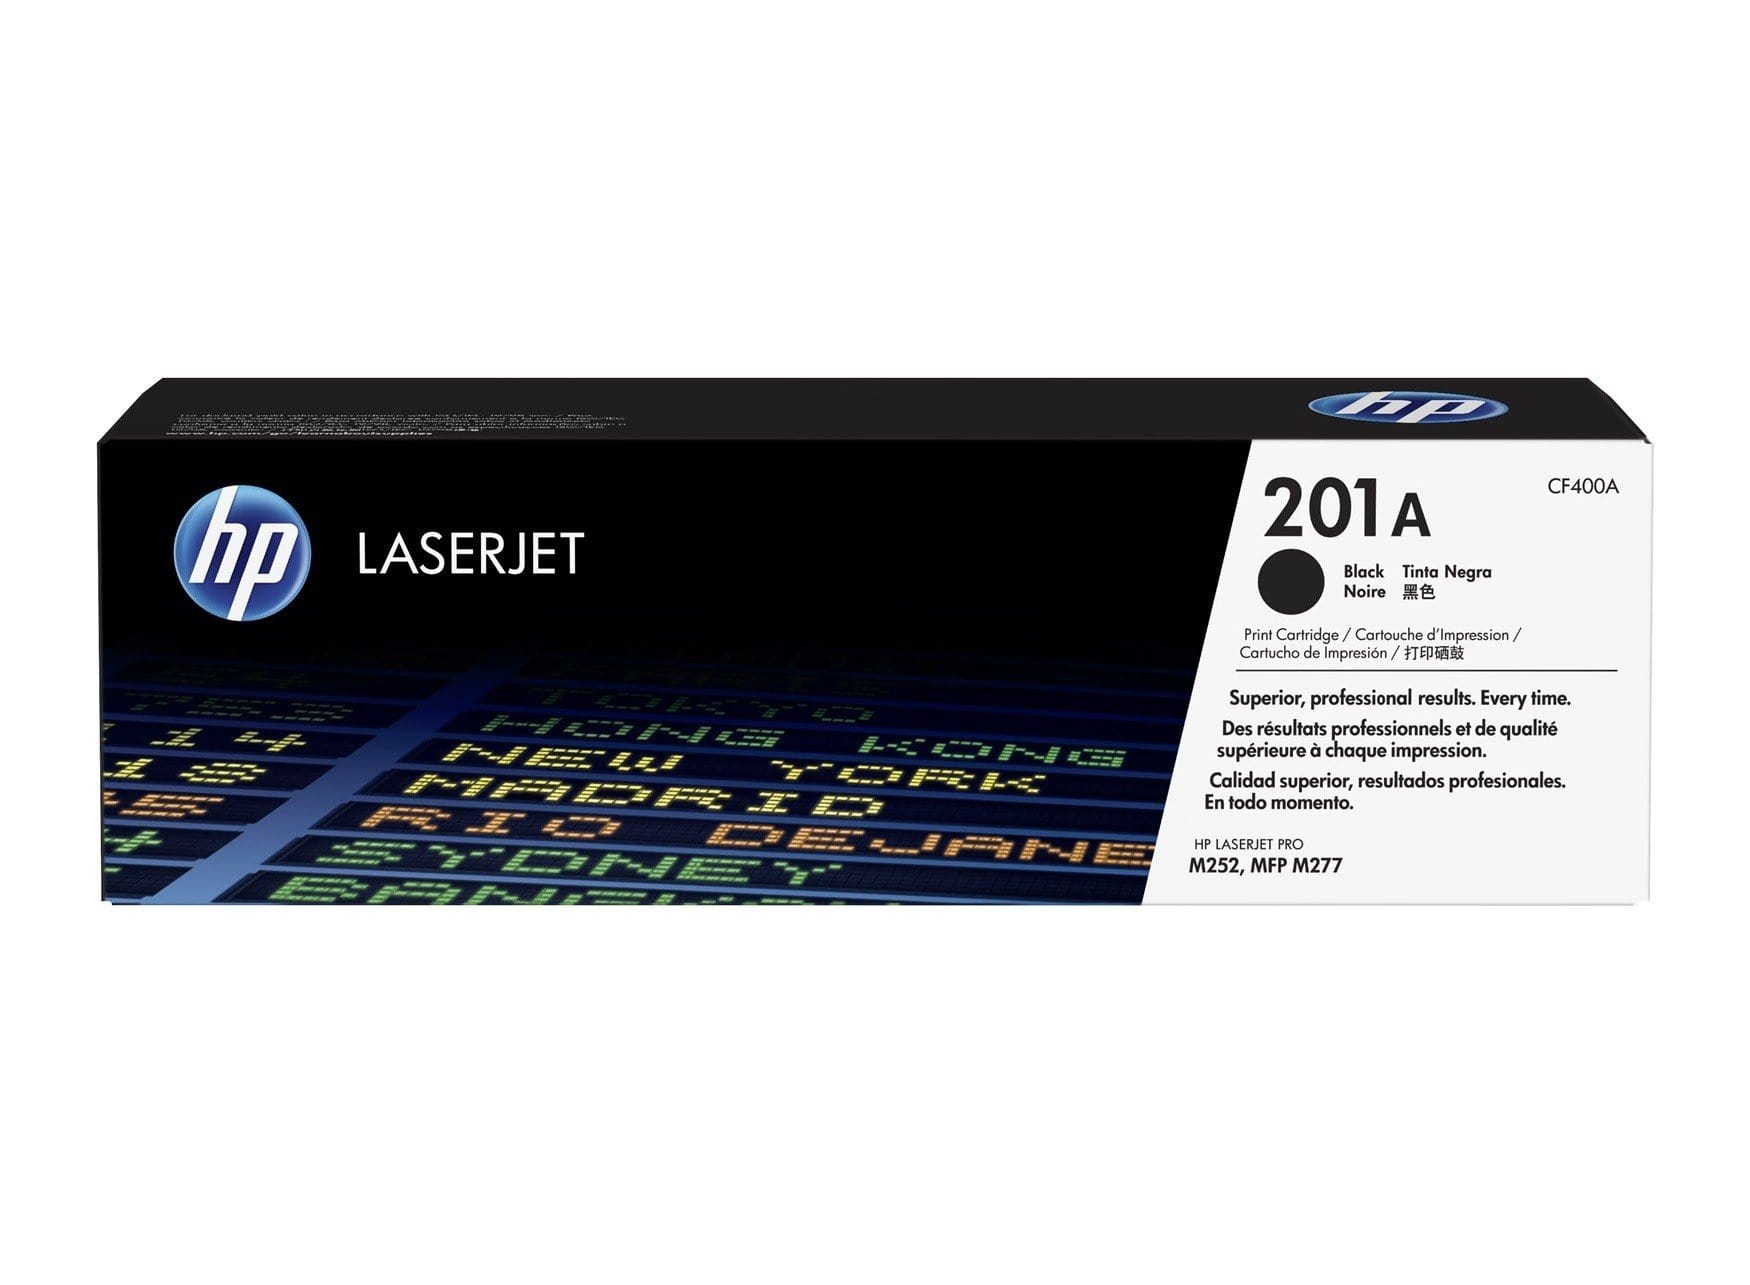 HP 201A Laserjet Toner Cartridge - Black, CF400A